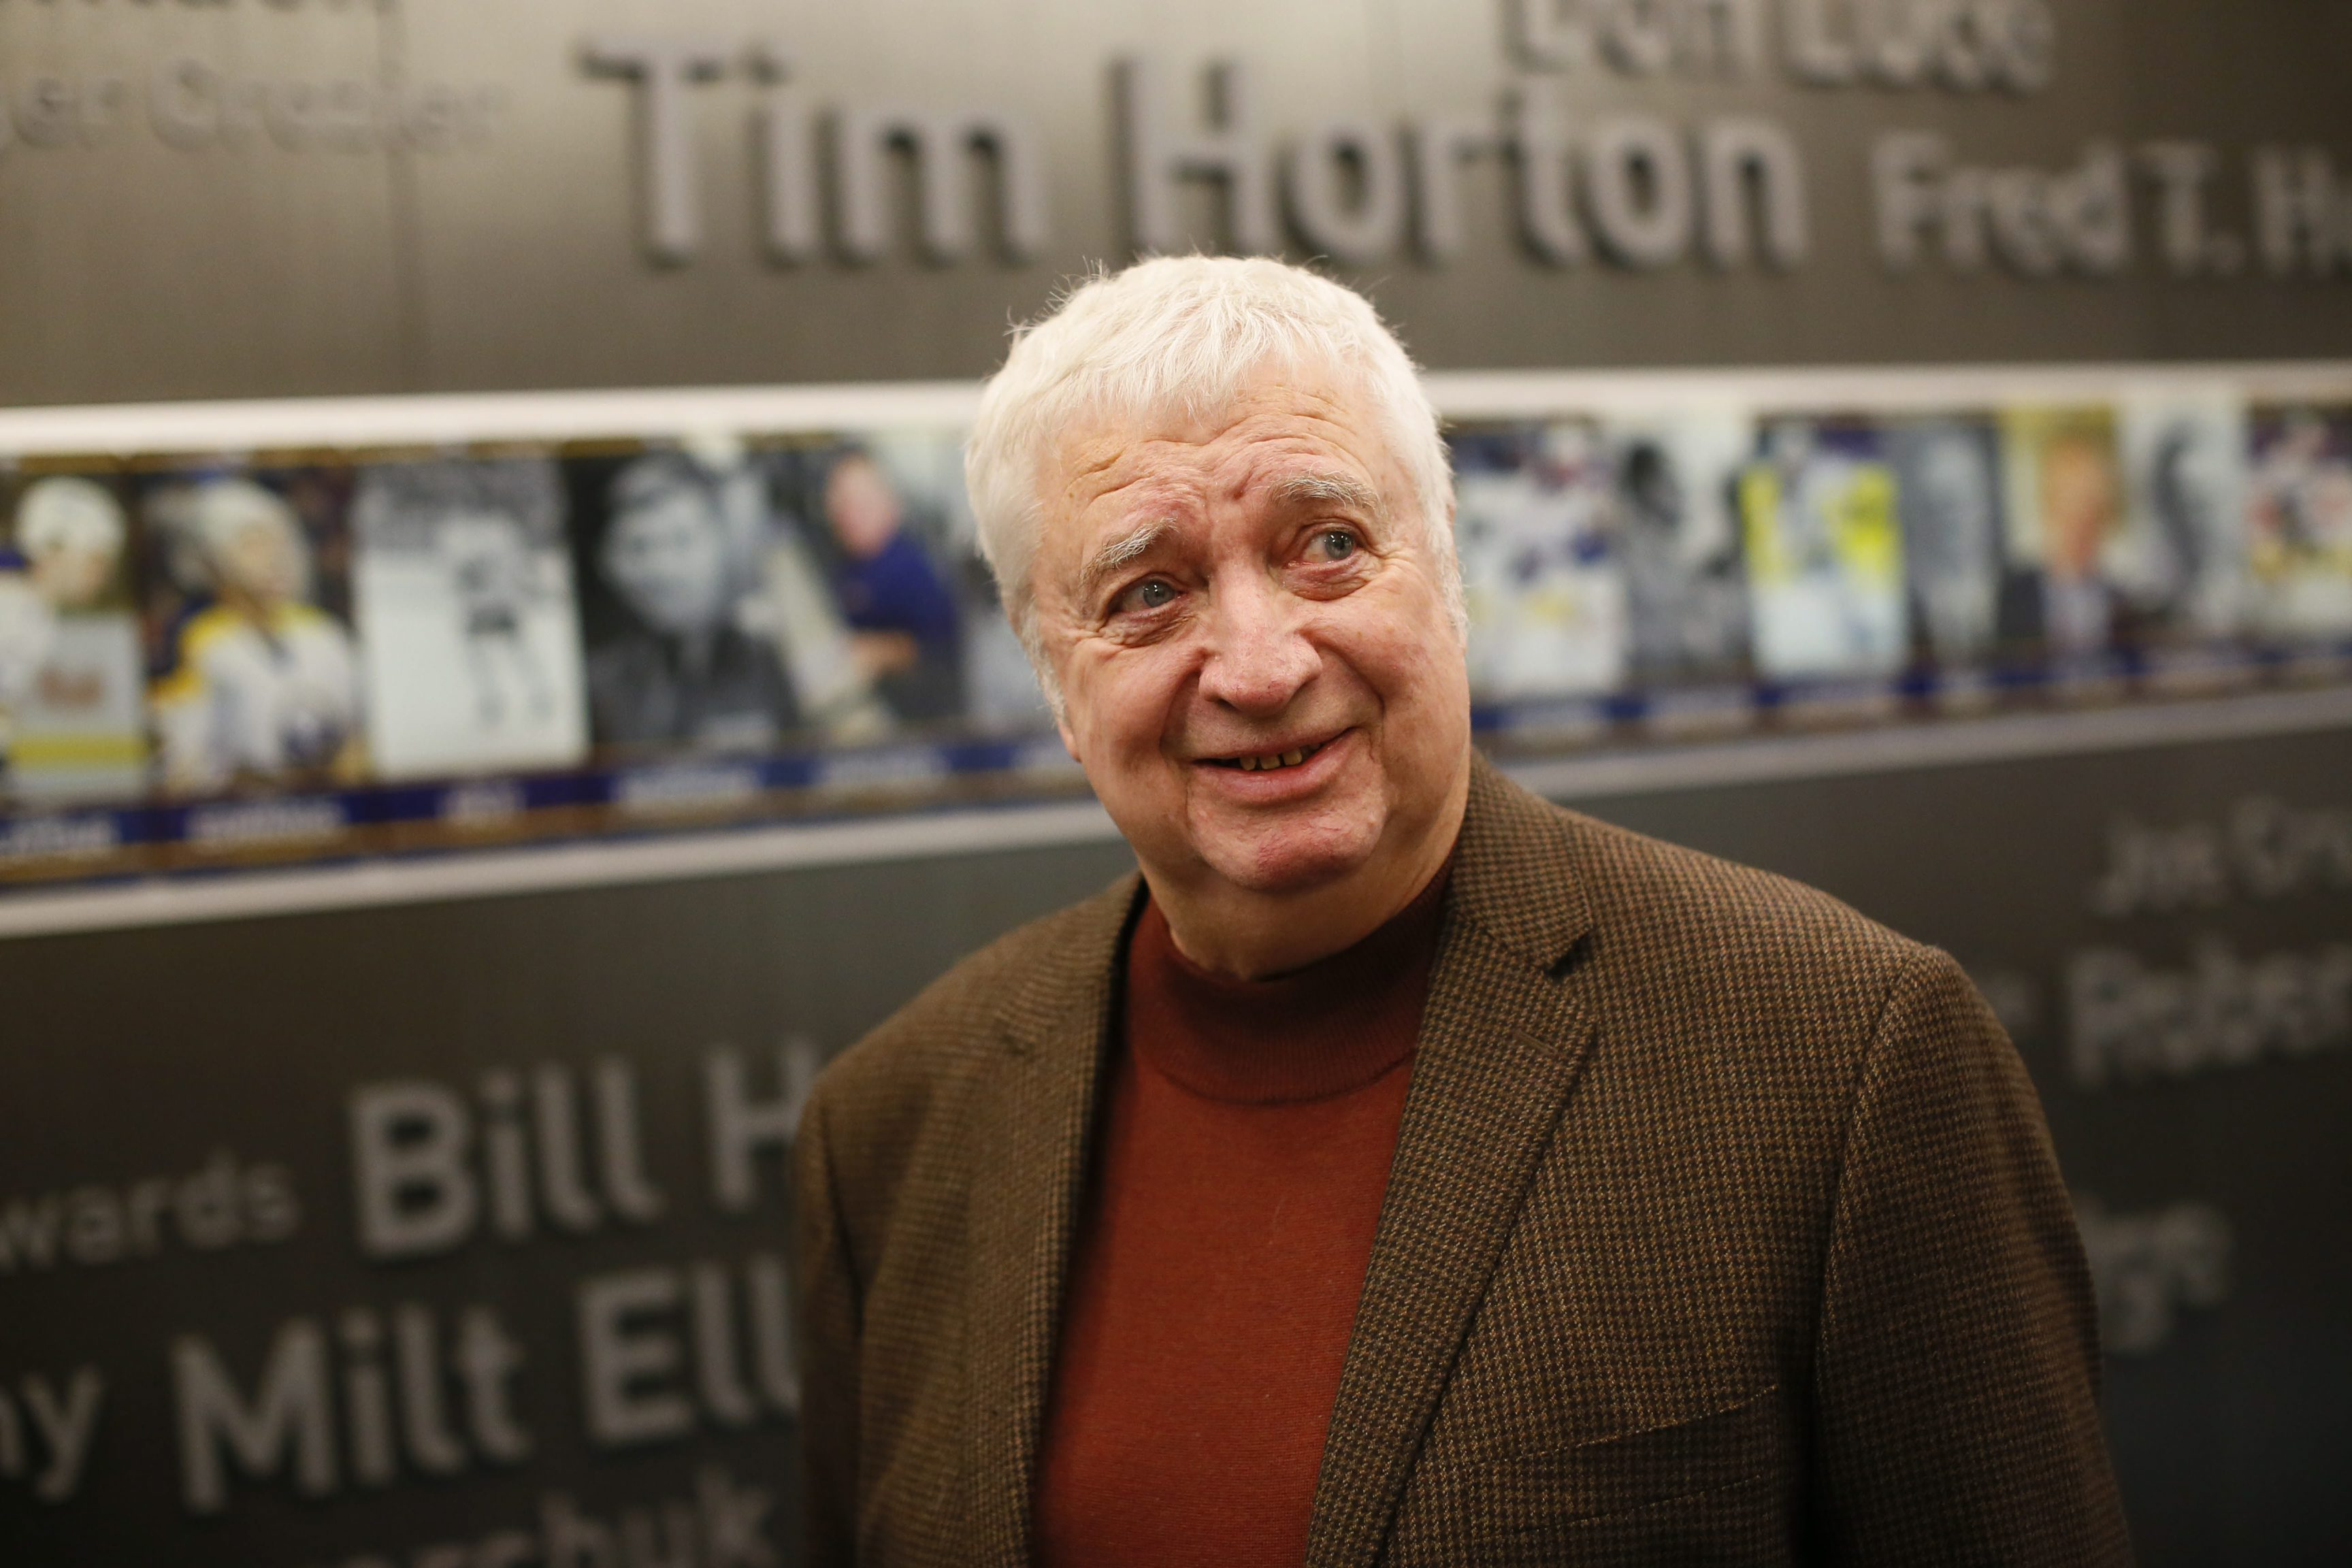 Fans can take home a talking Rick Jeanneret bobblehead for $30 or get an autographed one for $75. (Derek Gee/News file photo)